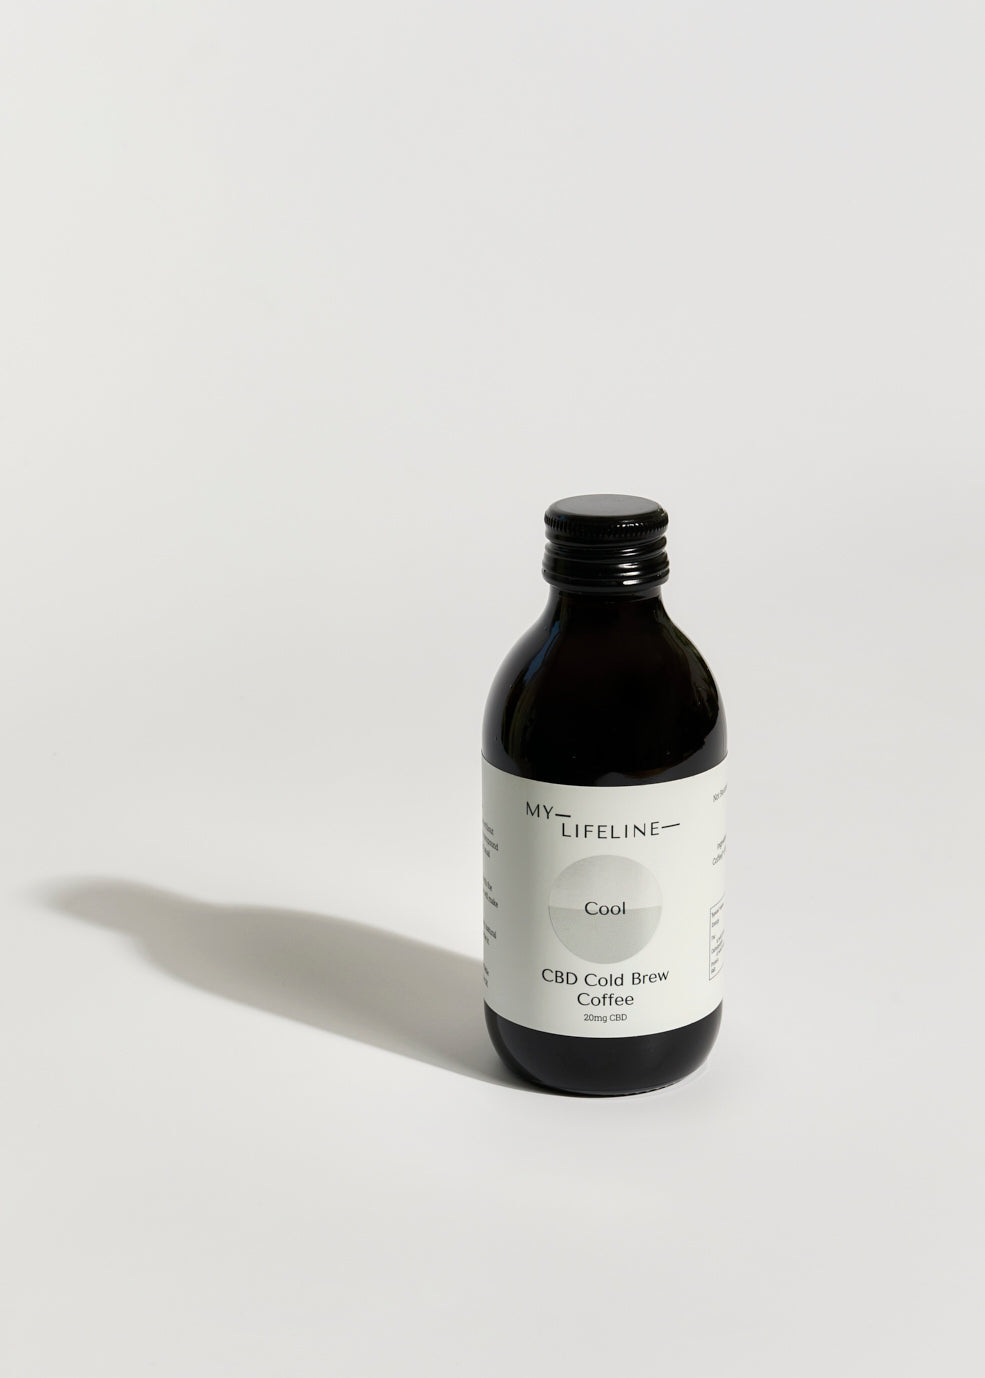 Cold brew coffee bottle on a white background